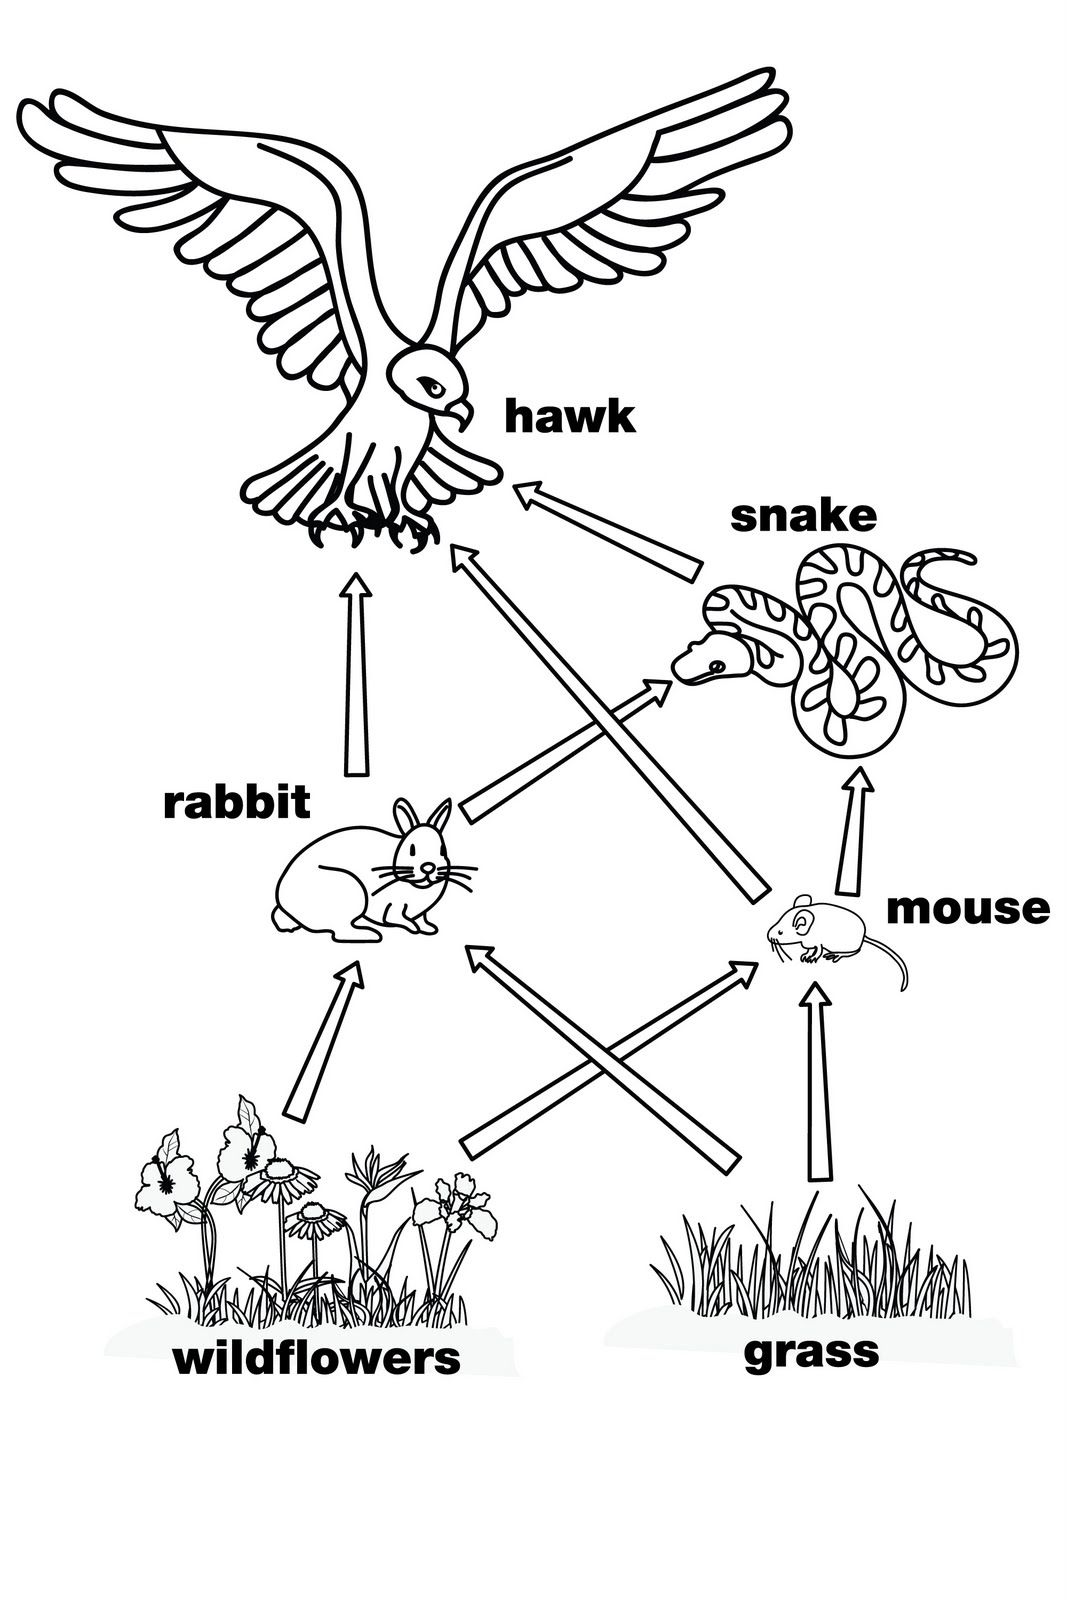 Food Web This Is A Perfect Diagram For The Food Web